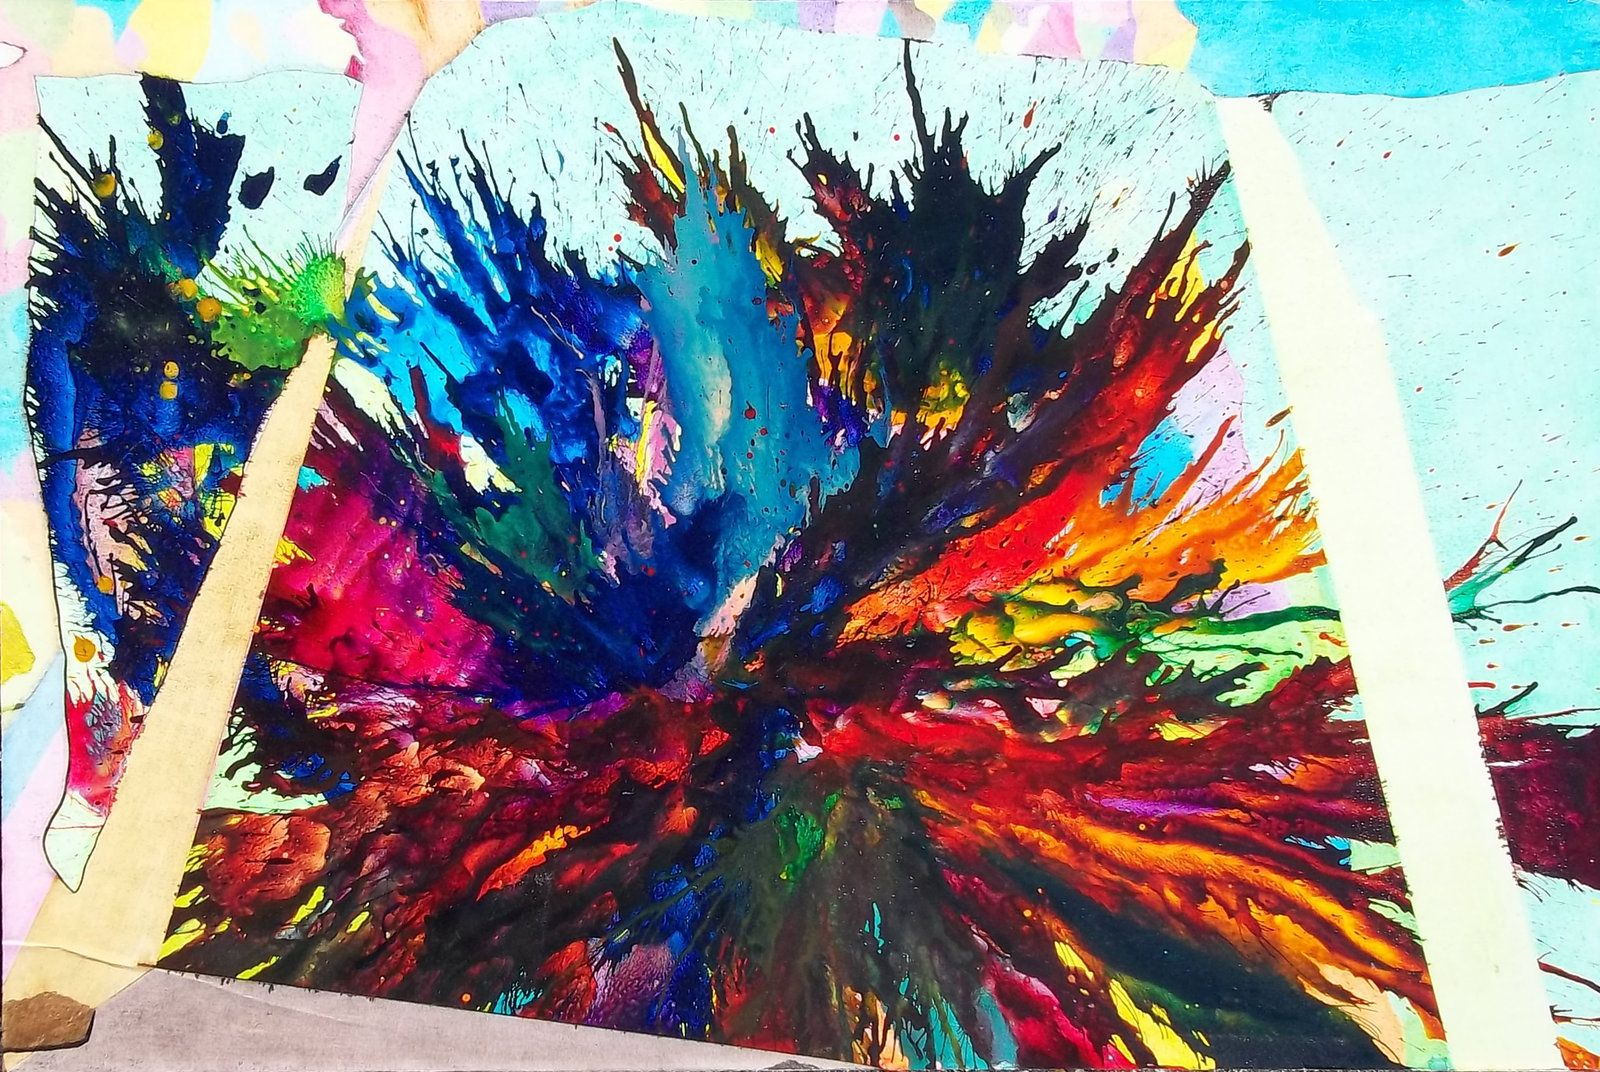 bliss_abstract_expressionism_splatter_painting_by ...